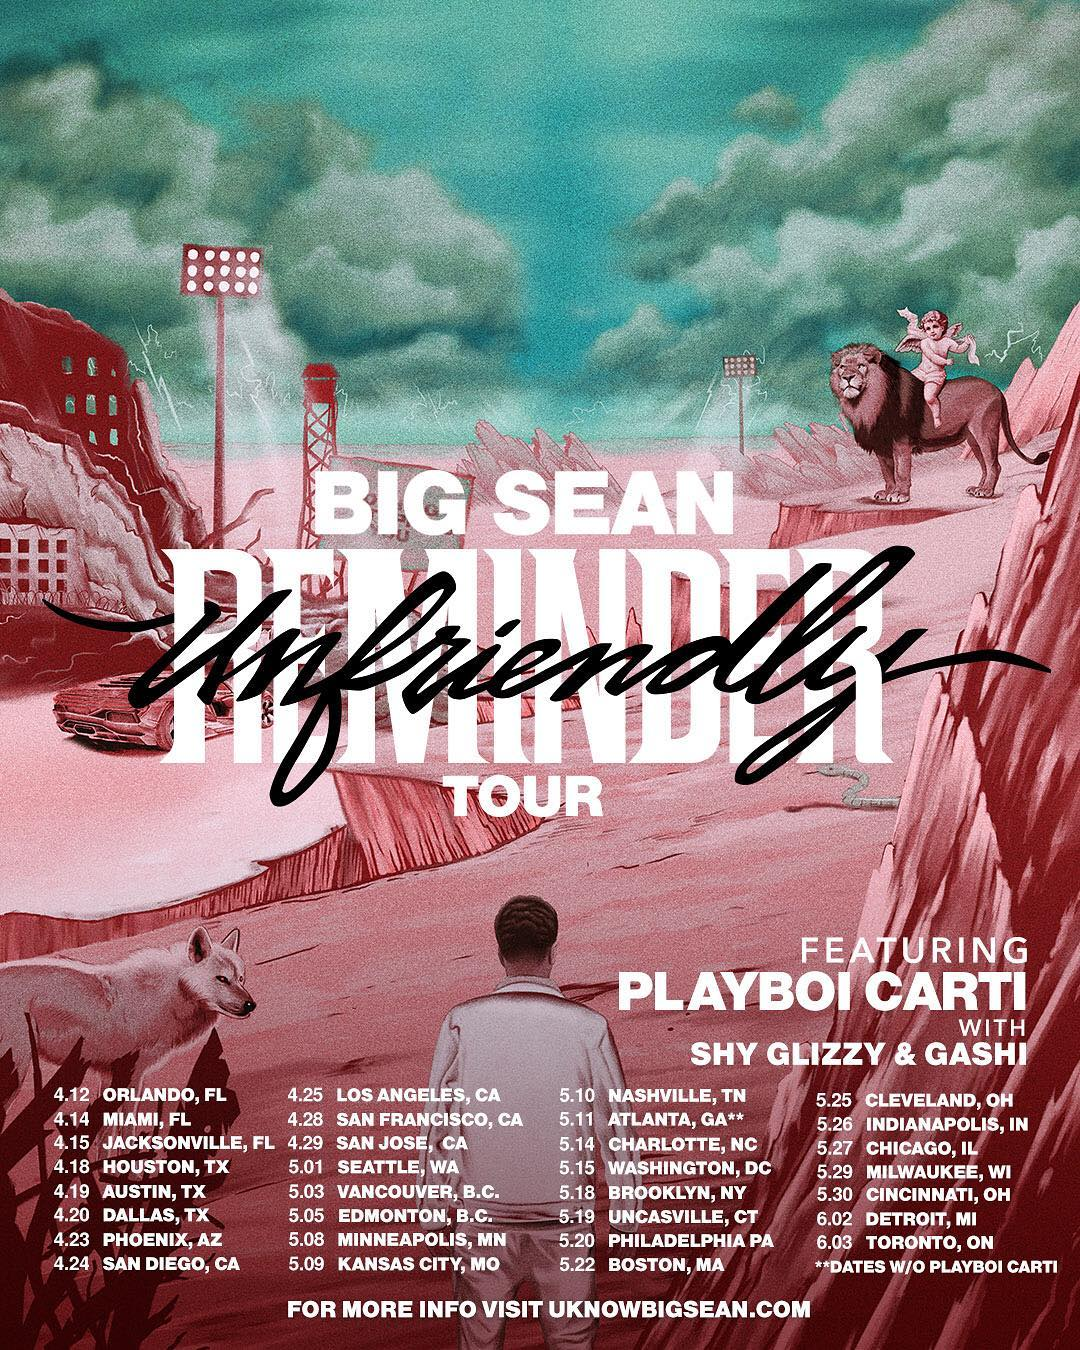 Shy Glizzy Is Going On Tour With Big Sean & Playboi Carti